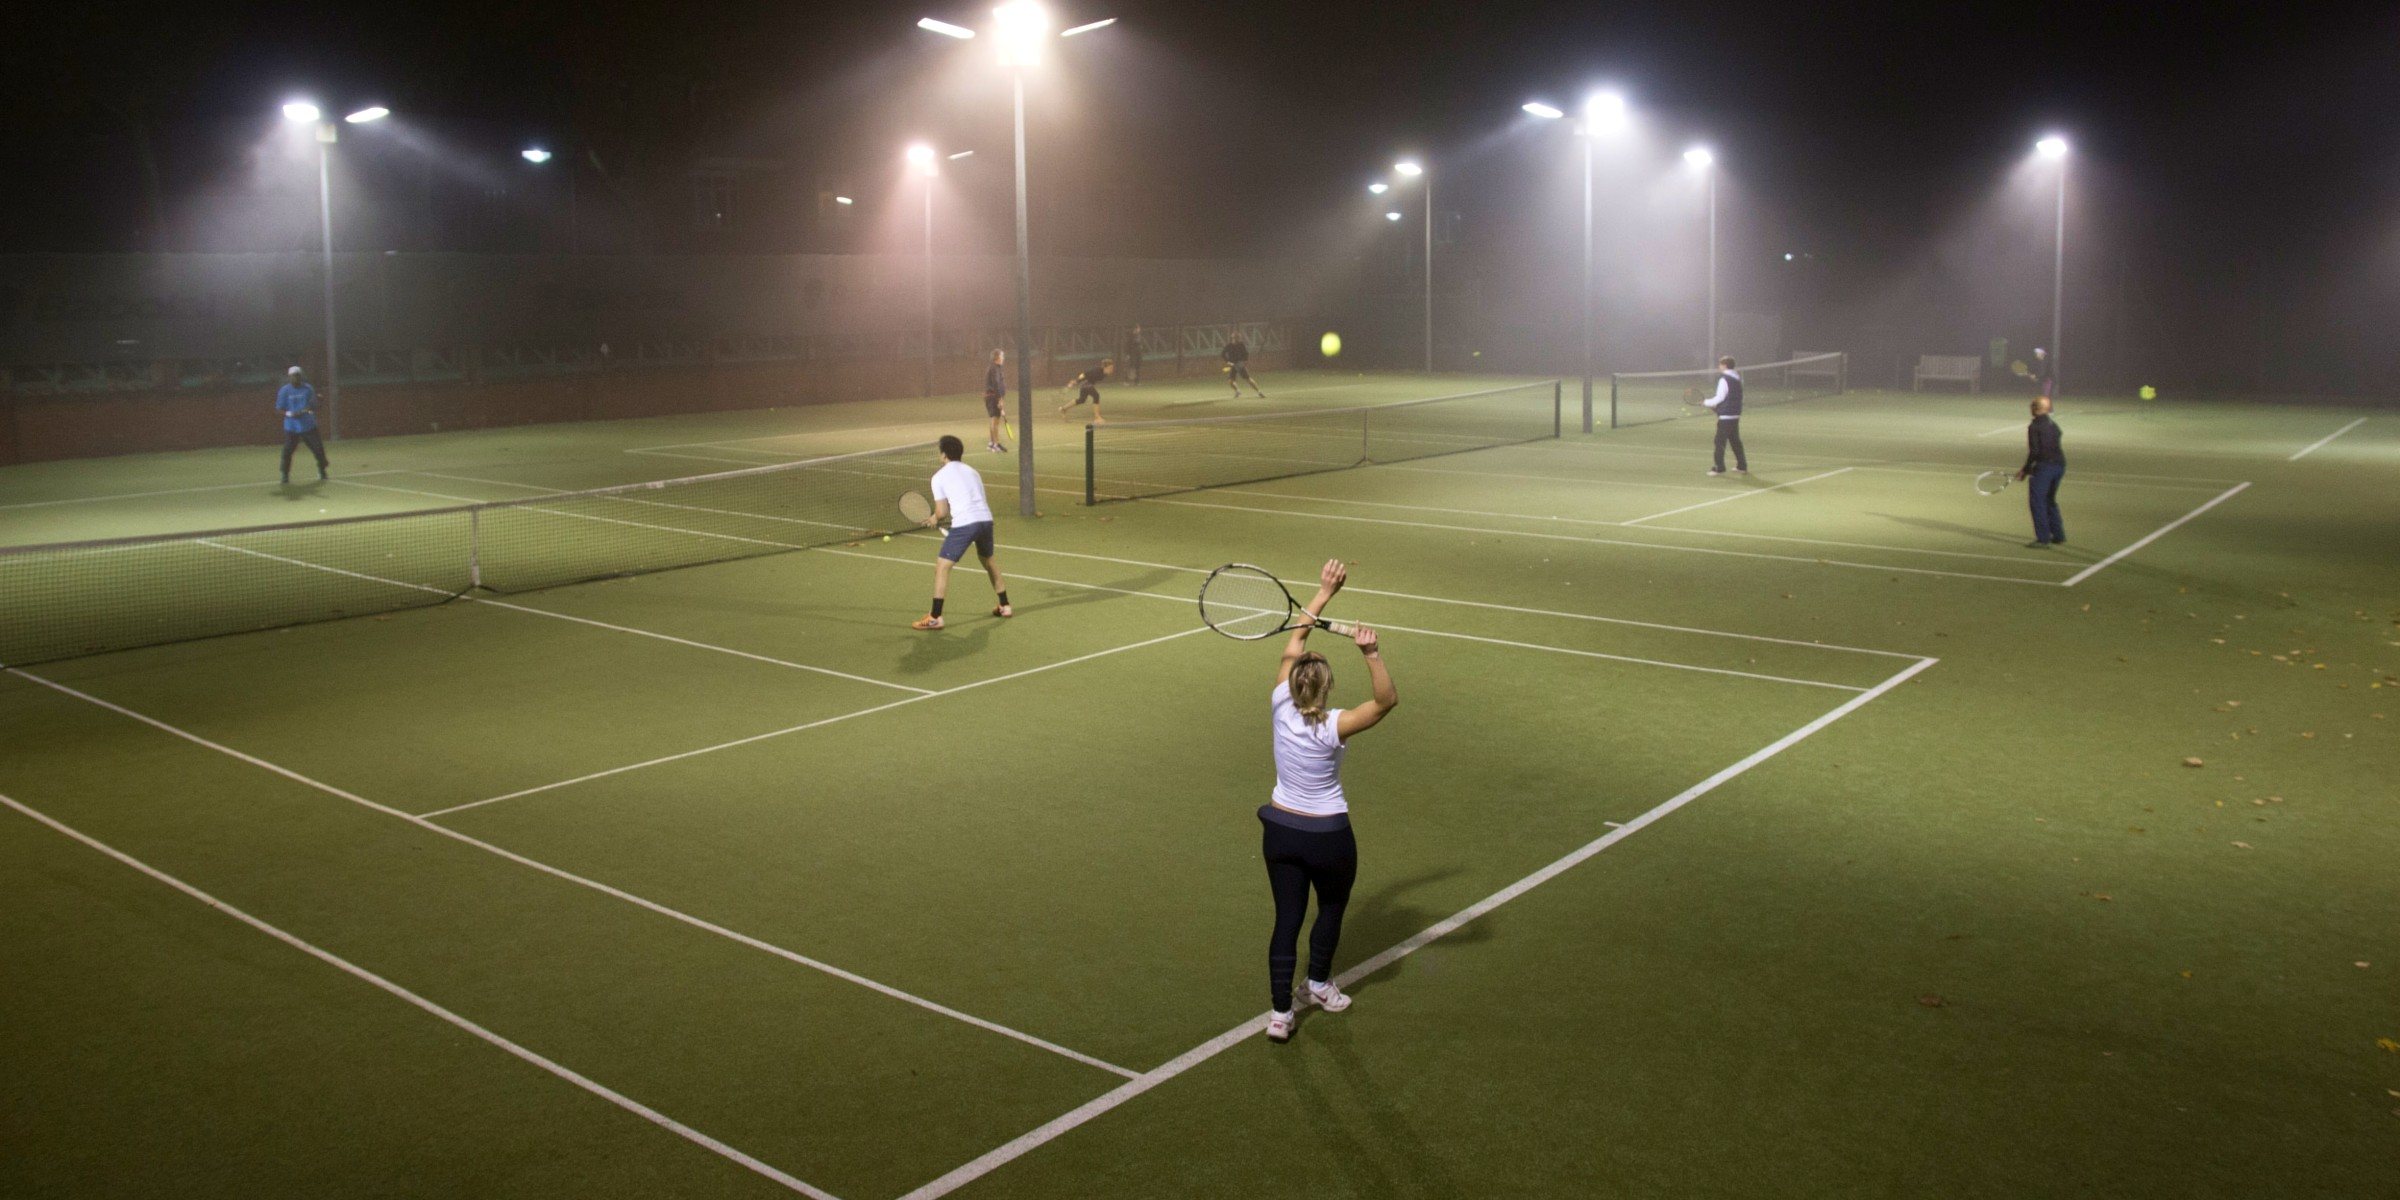 Club's tennis courts by night